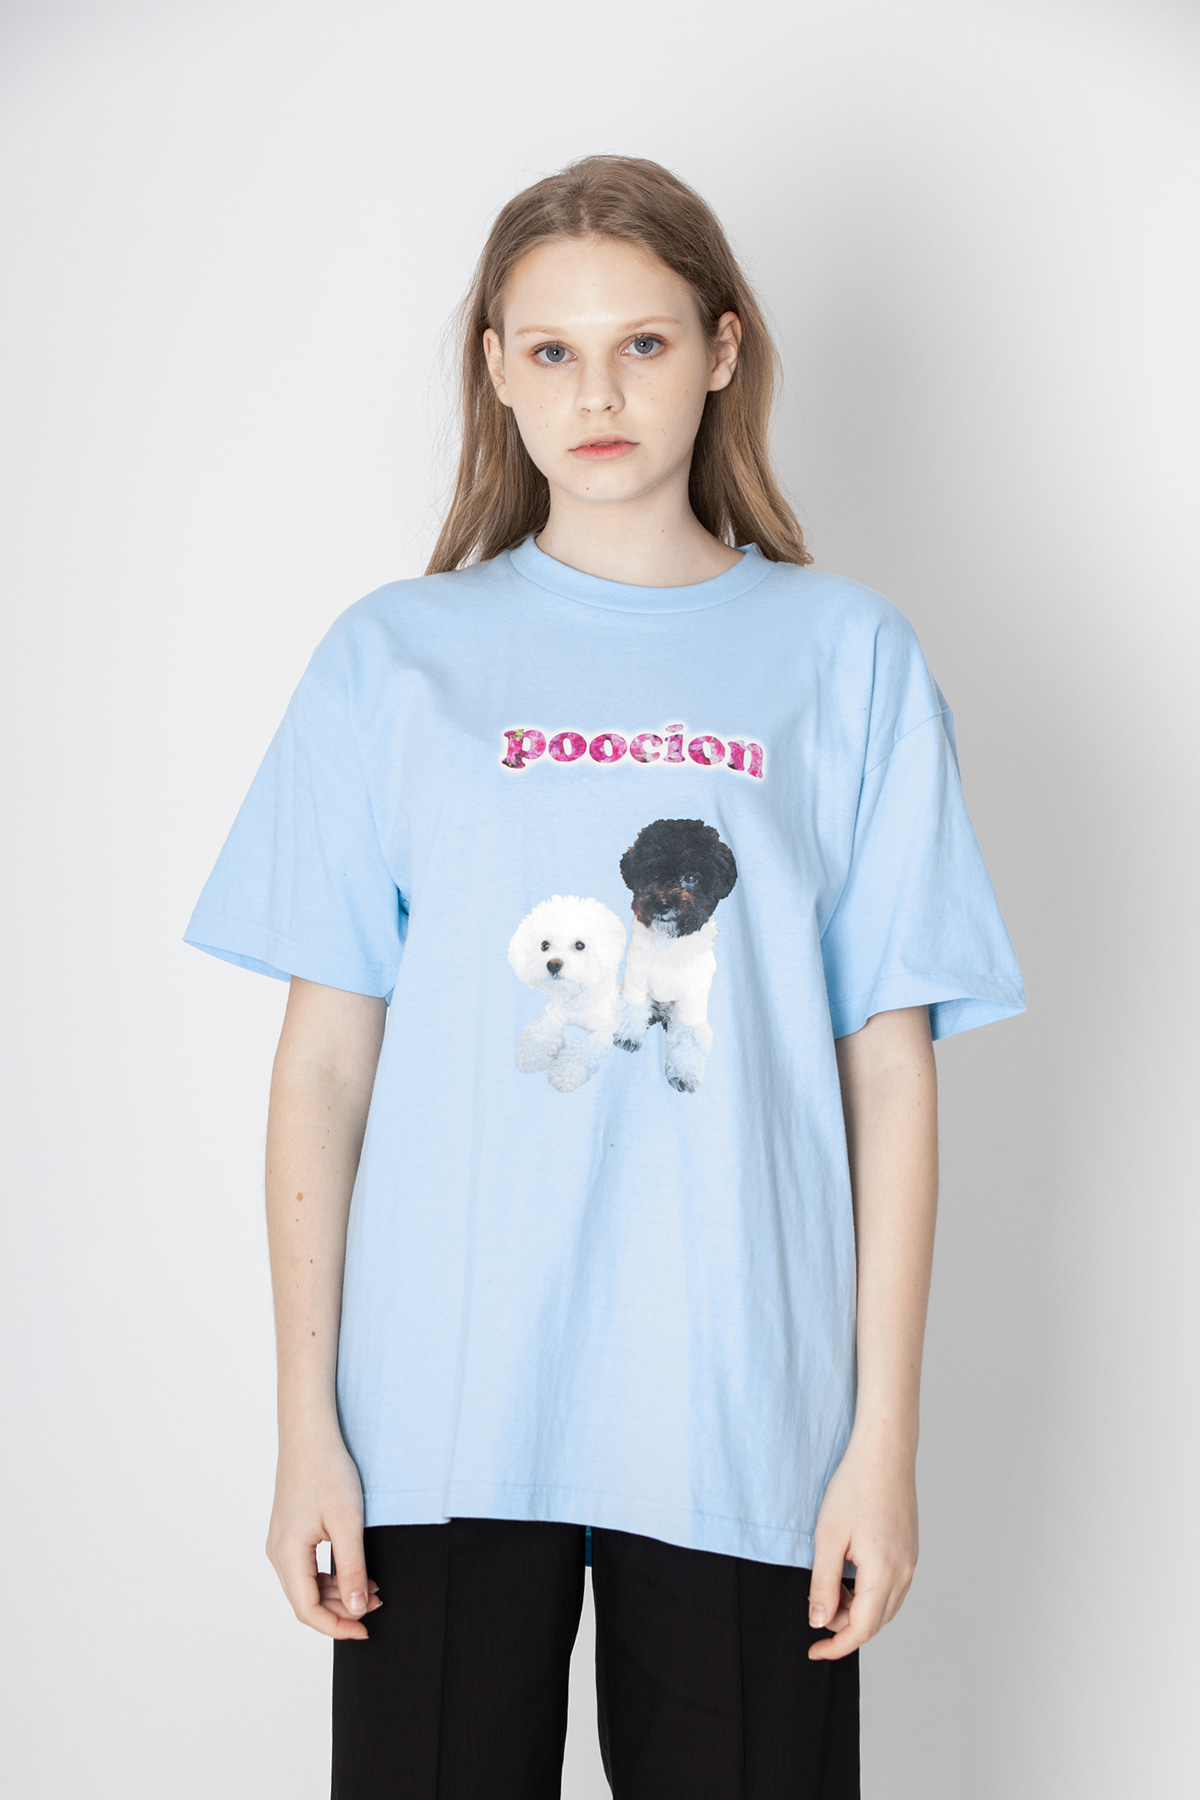 POOCION Twin T-shirt (Sky Blue)